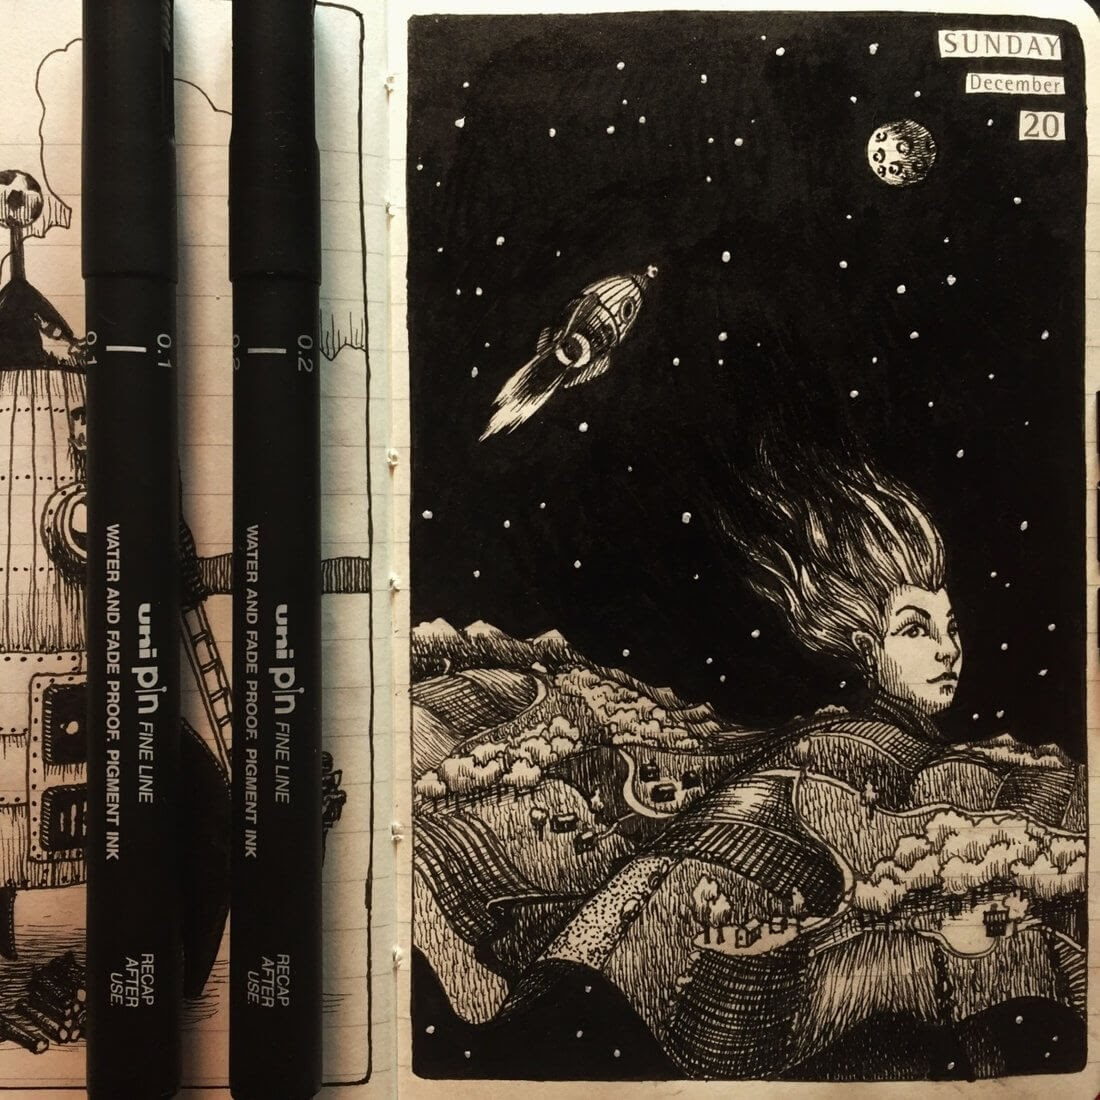 10-Travel-and-Responsibilities-Nina-Johansson-Moleskine-Diary-of-Surreal-Ink-Drawings-www-designstack-co